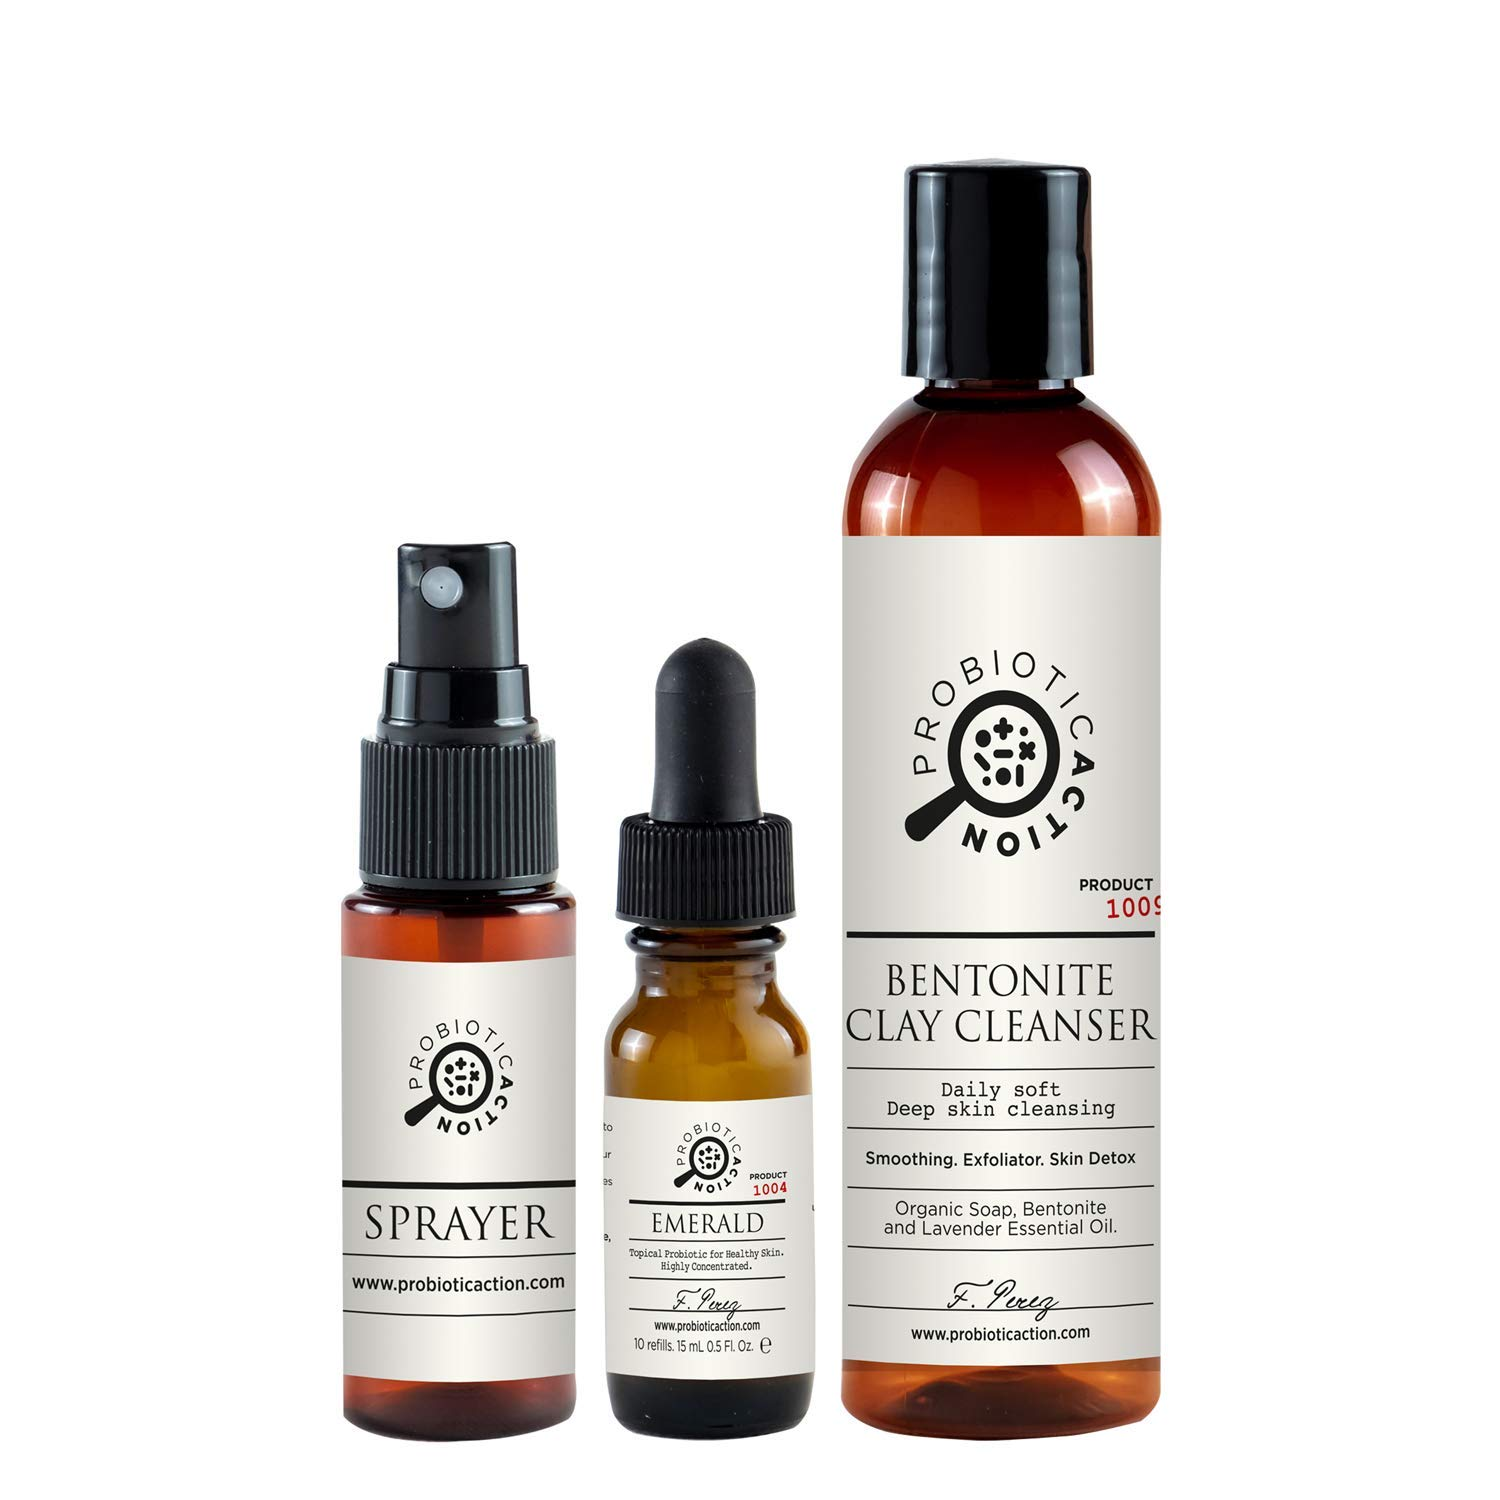 Organic Acne Treatment - Probiotic Action - 2 Steps - Bentonite Cleanser and Probiotic Spray Skincare